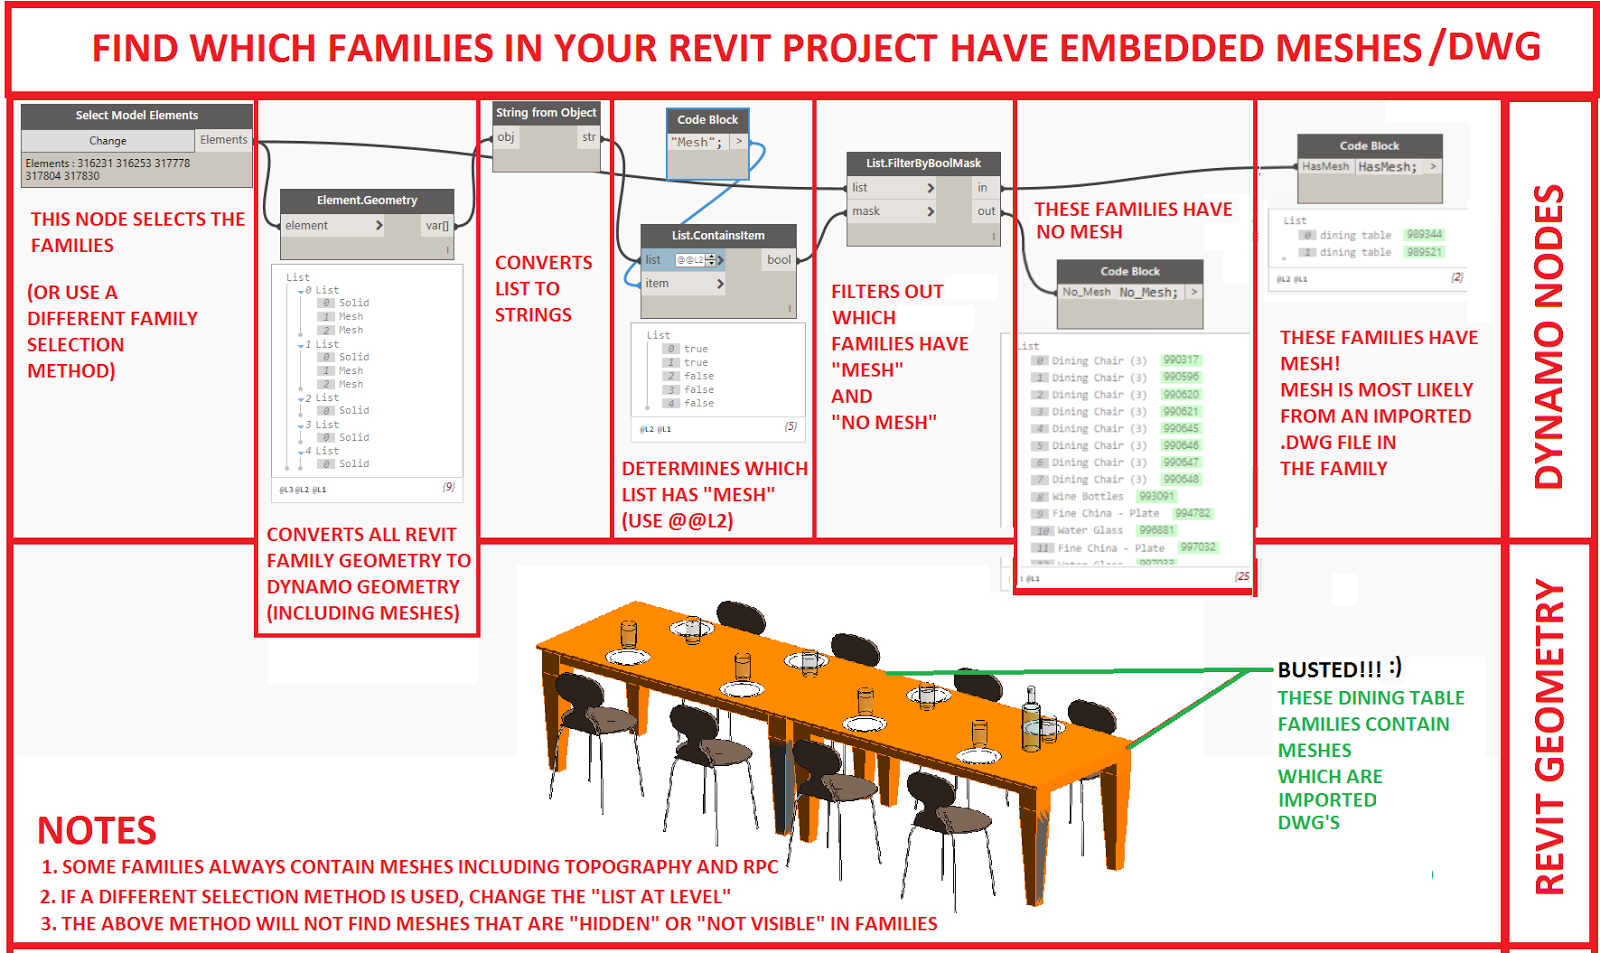 Find The Families In Your Revit Project That Have Embedded Dwg